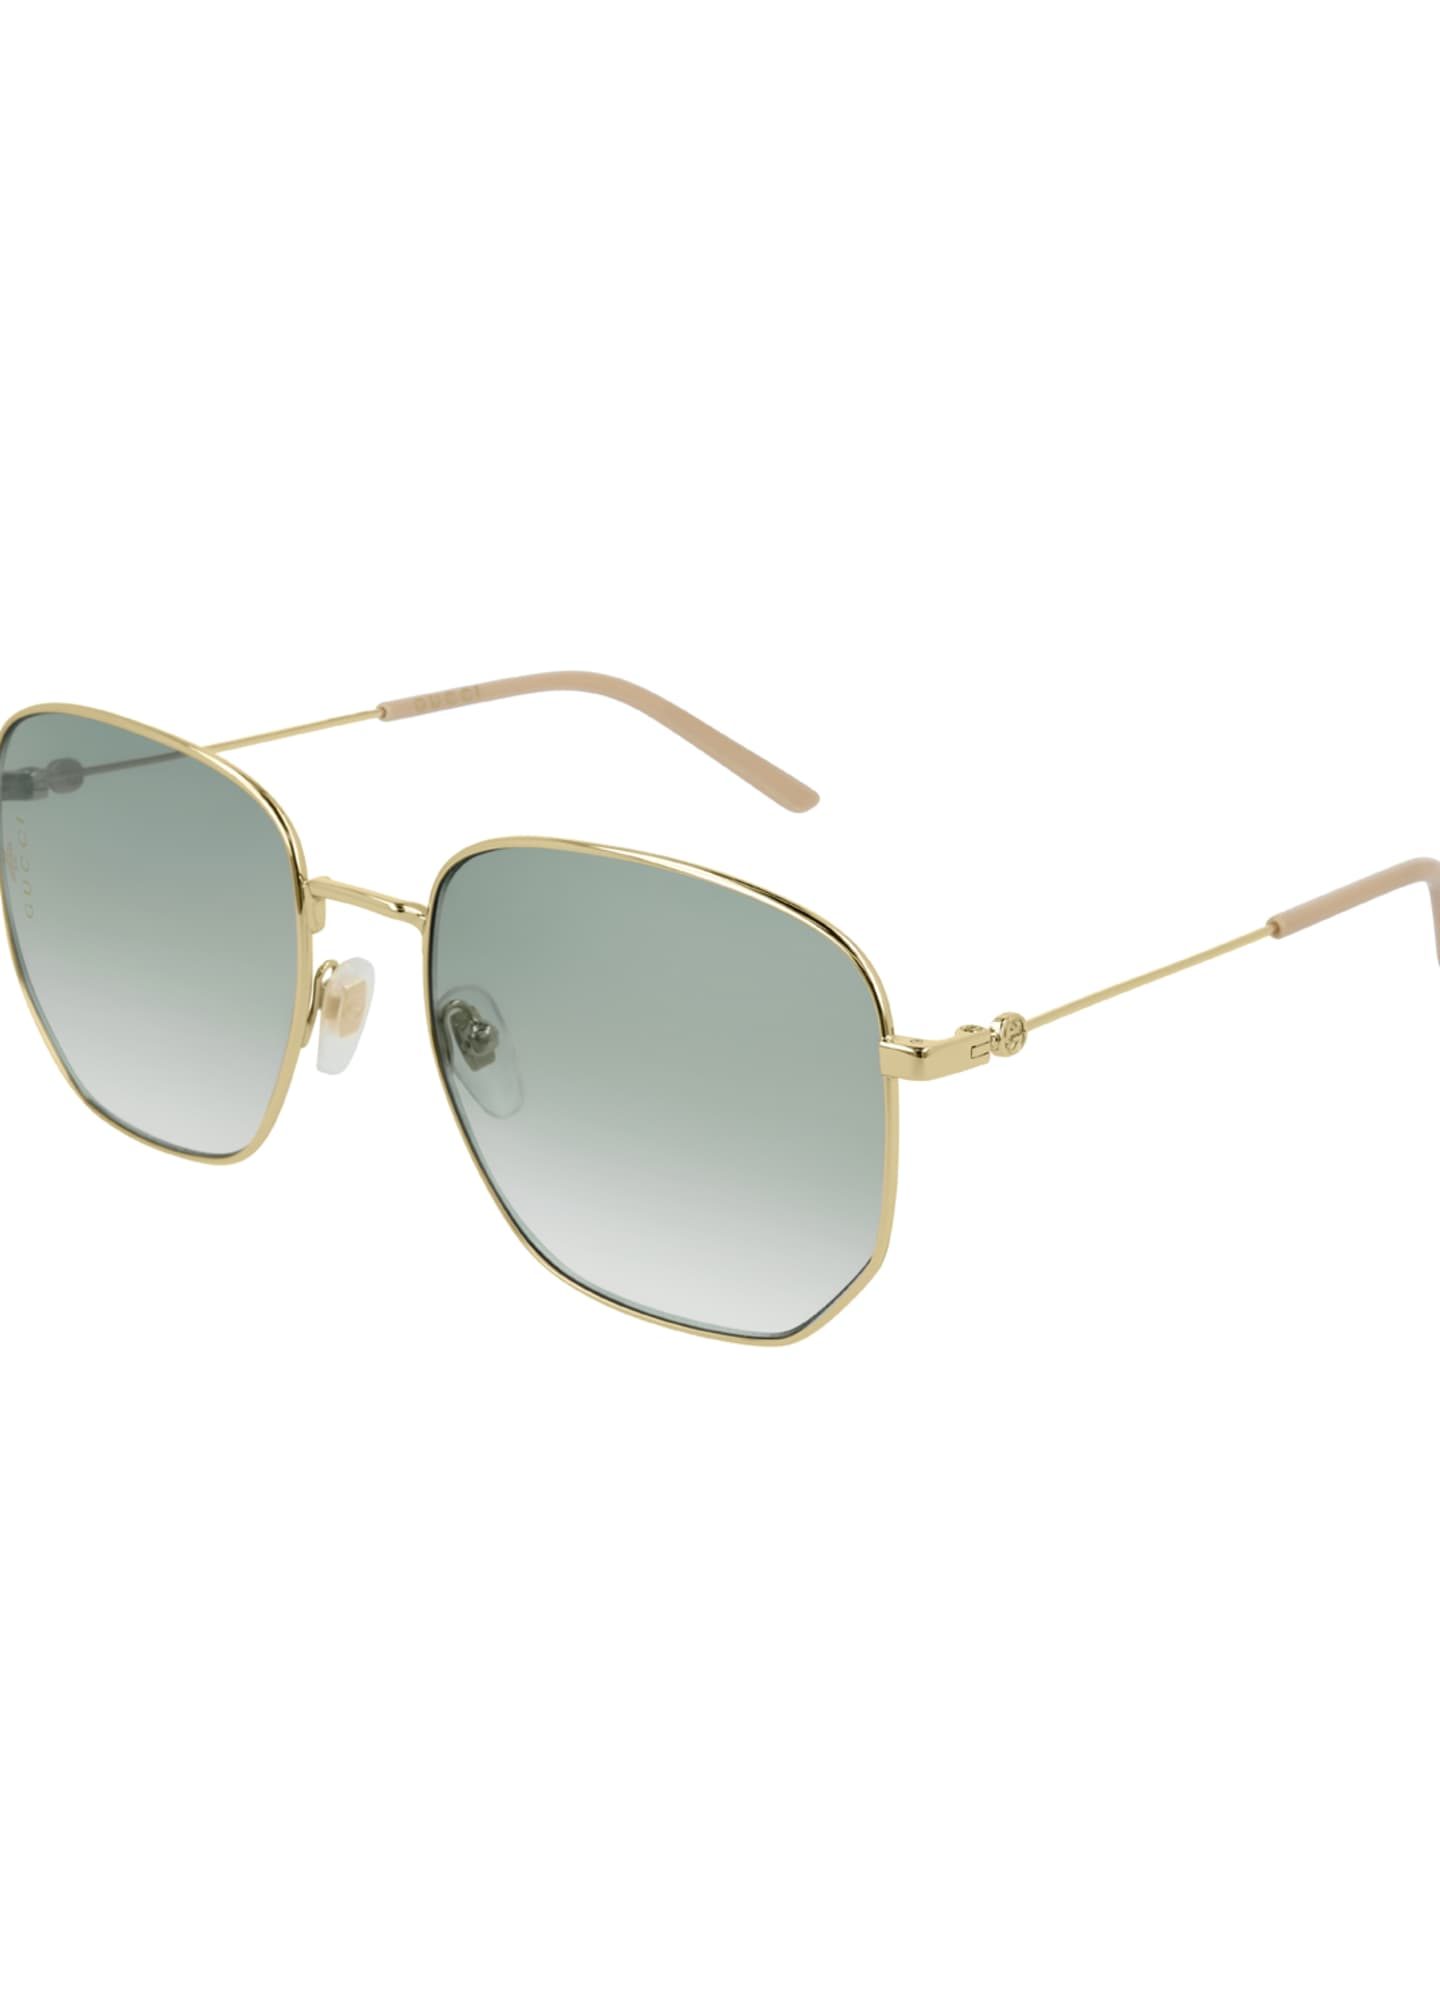 Gucci Men's Squared Gradient Sunglasses